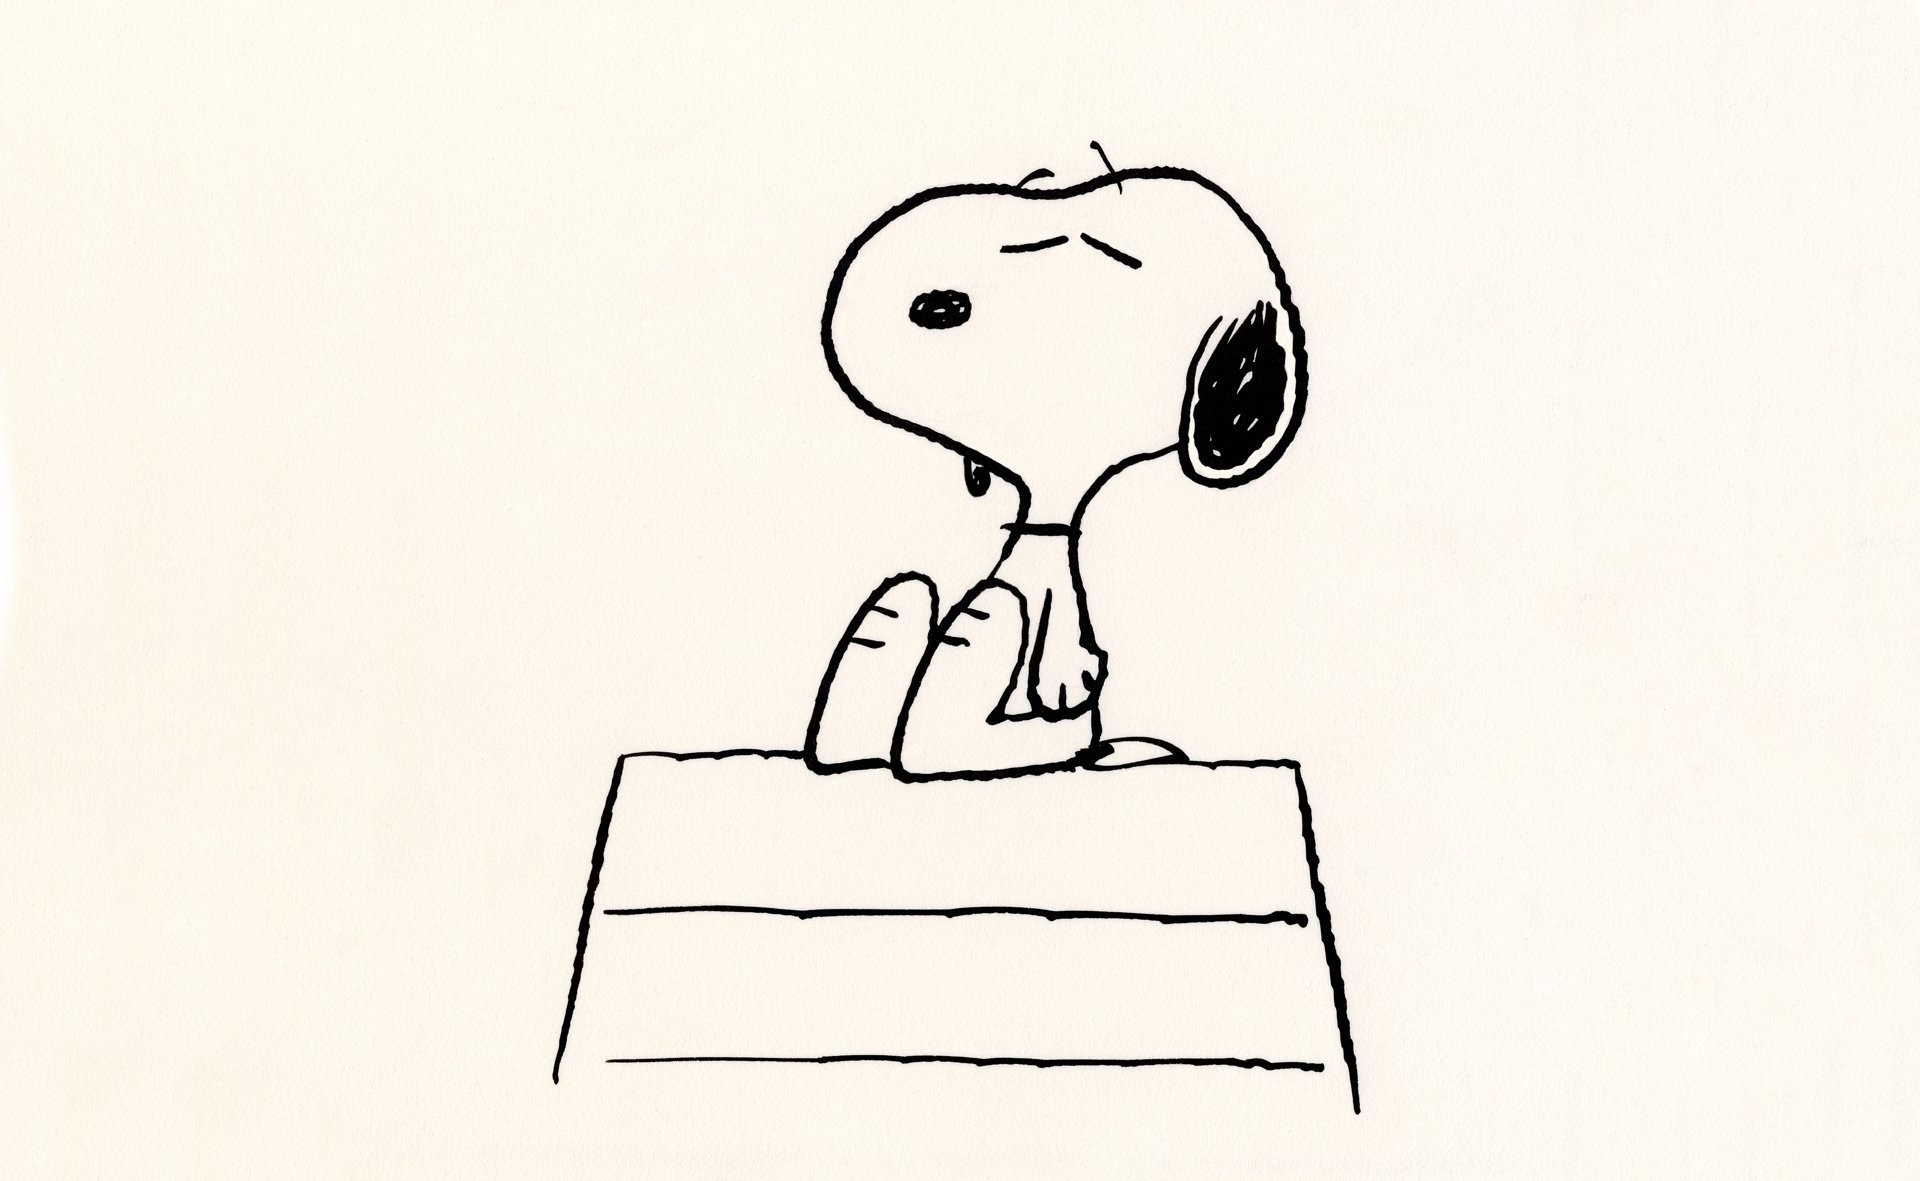 Res: 1920x1181, Snoopy 17 Fondos de Pantalla Imagenes Para Compartir SaGiTaRioXP - HD  Wallpapers